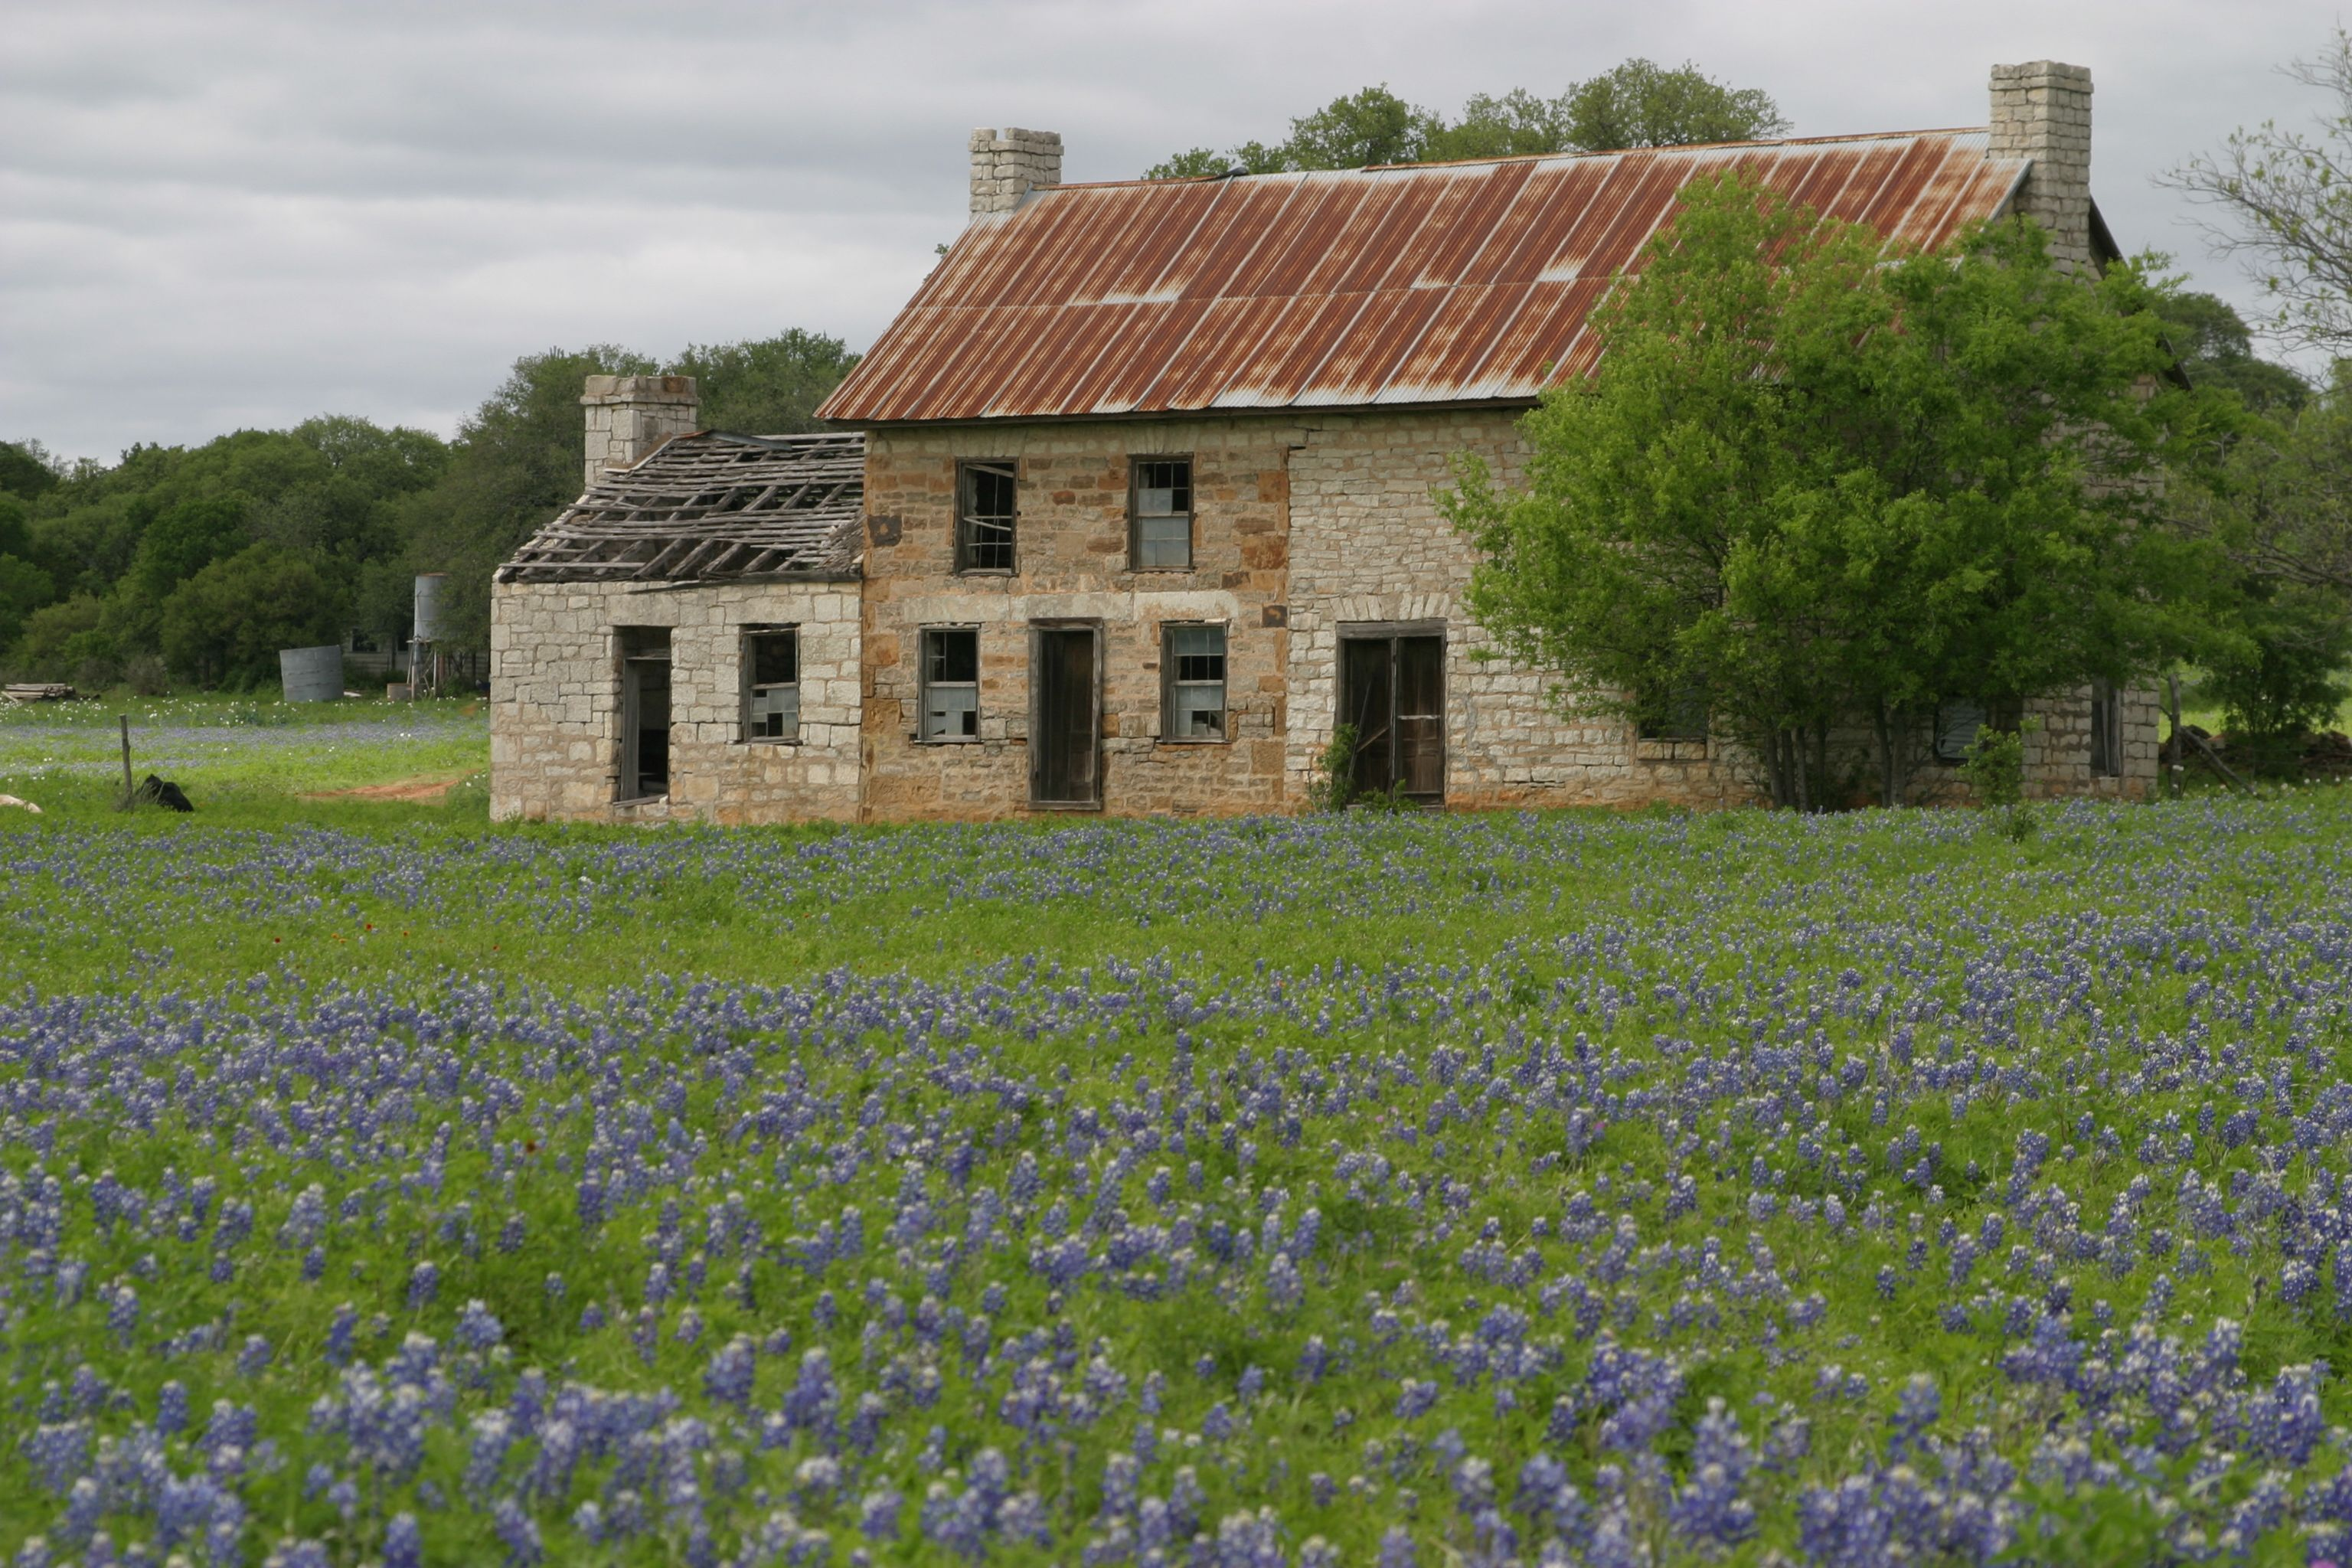 """The somewhat infamous """"Bluebonnet House"""" on Hwy 281 near Marble Falls, TX."""